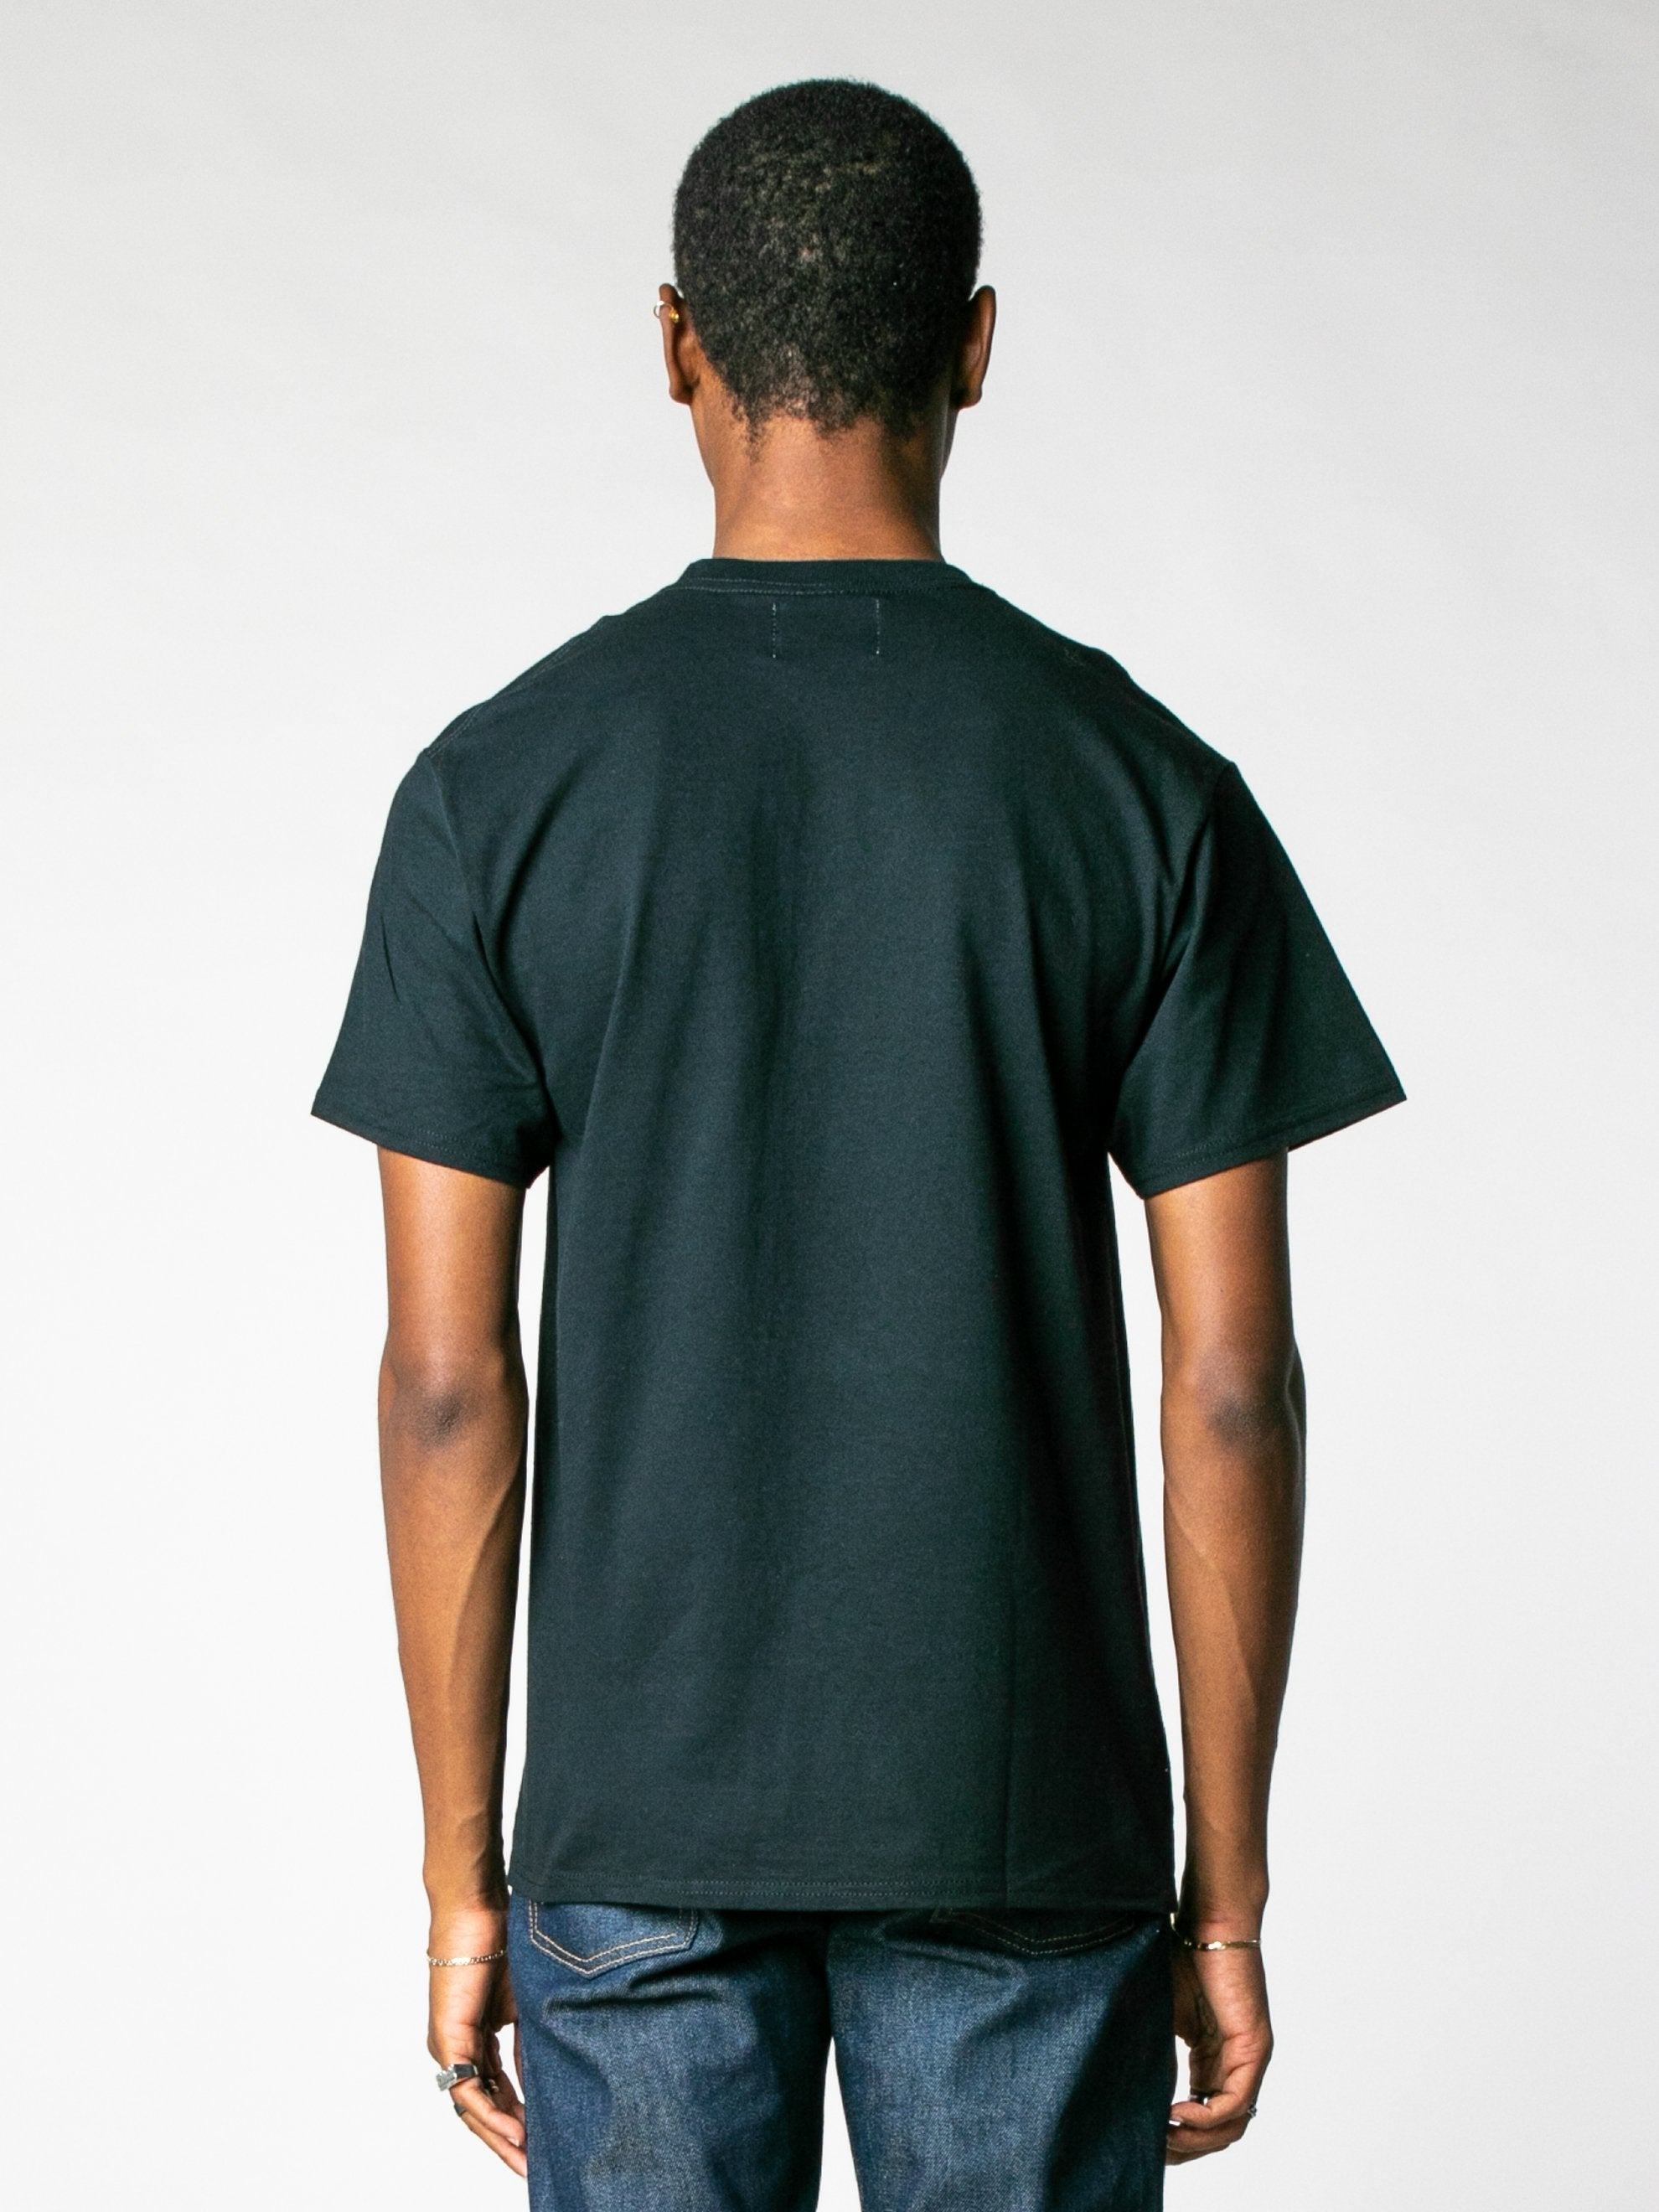 Black Elephant T-shirt 6